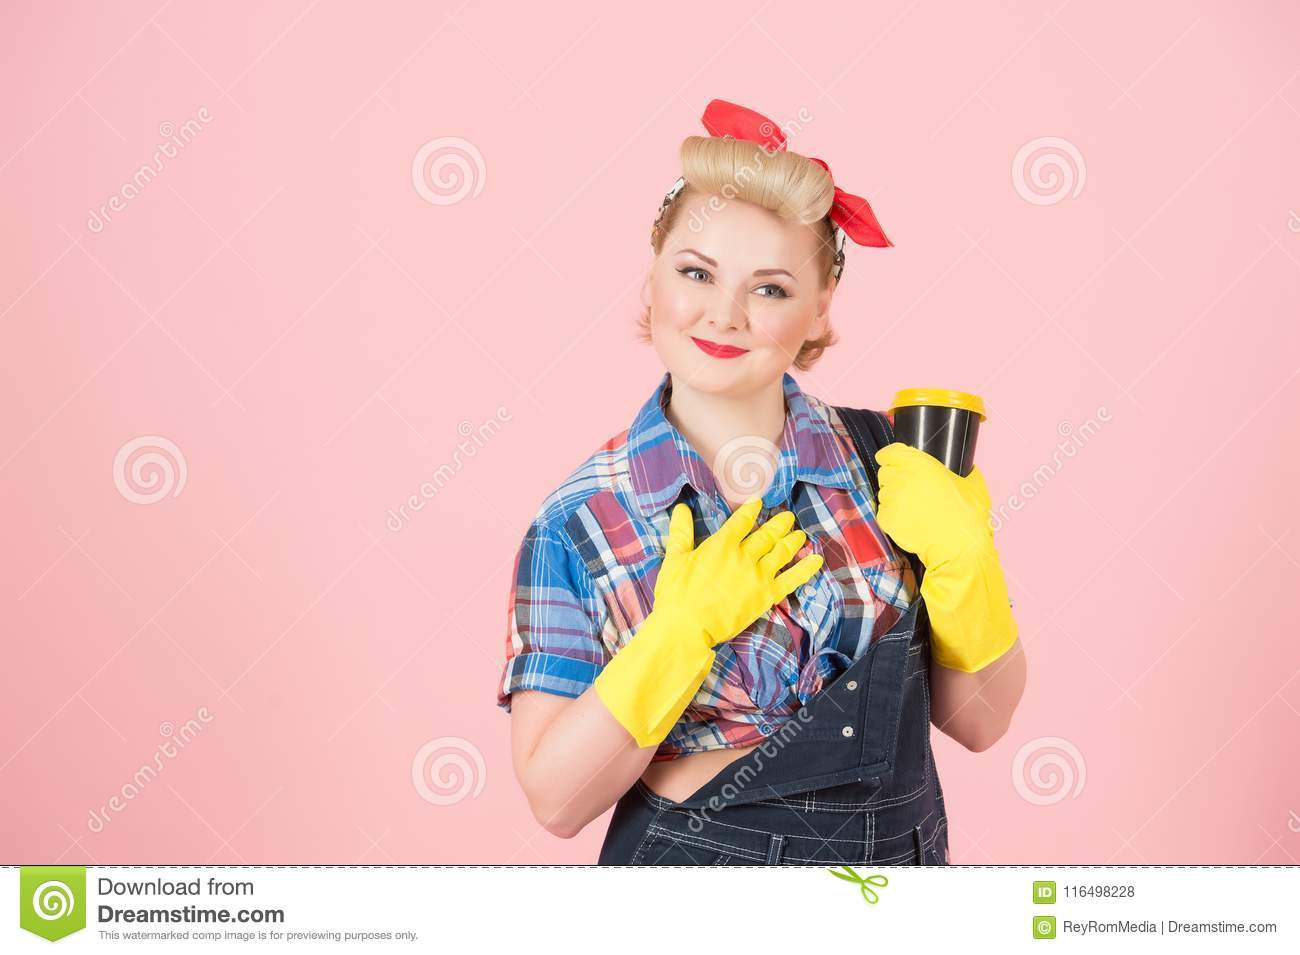 Gratefulness housewife holding craft cup. Portrait of thankfulness woman in latex gloves with cup of coffee in pin-up style.